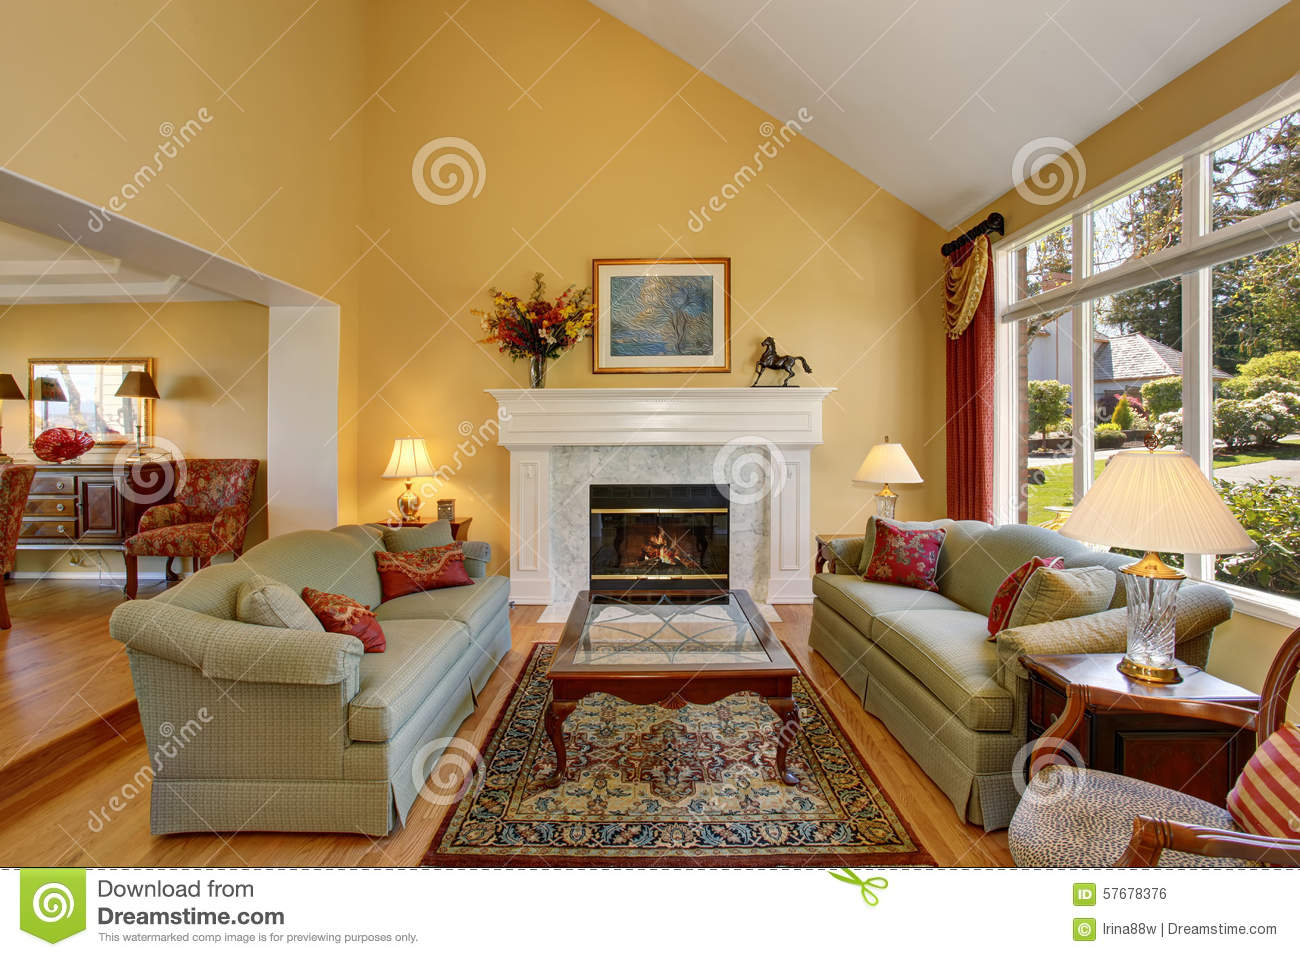 Brilliant Living Room With Green Sofas And Yellow Walls Stock Photo Image Of House Lamp